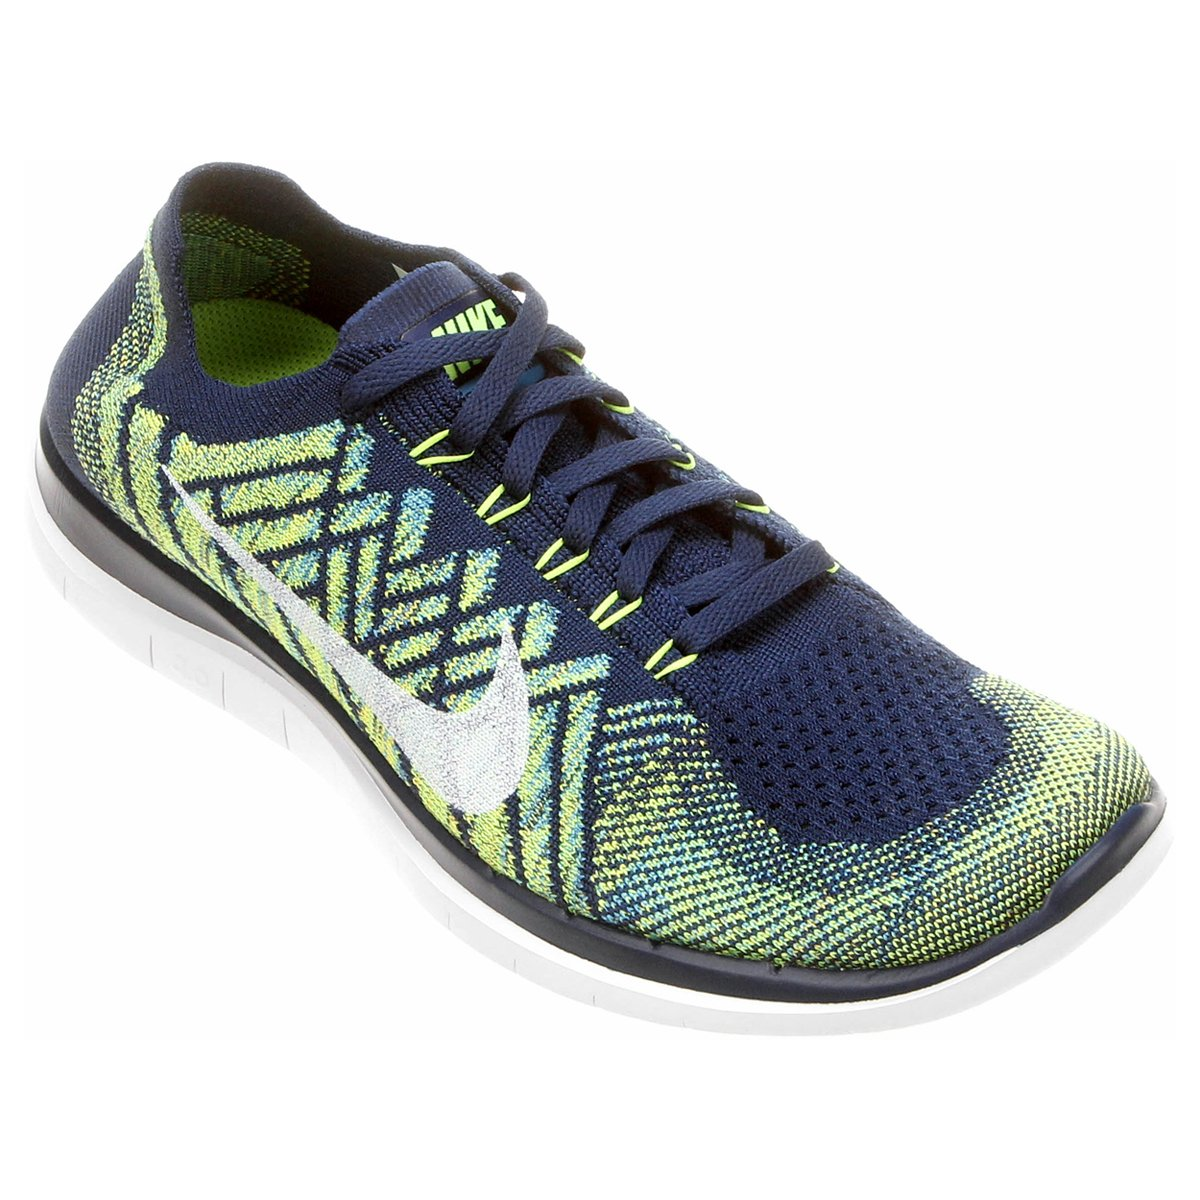 nike free 4.0 flyknit netshoes suplementos